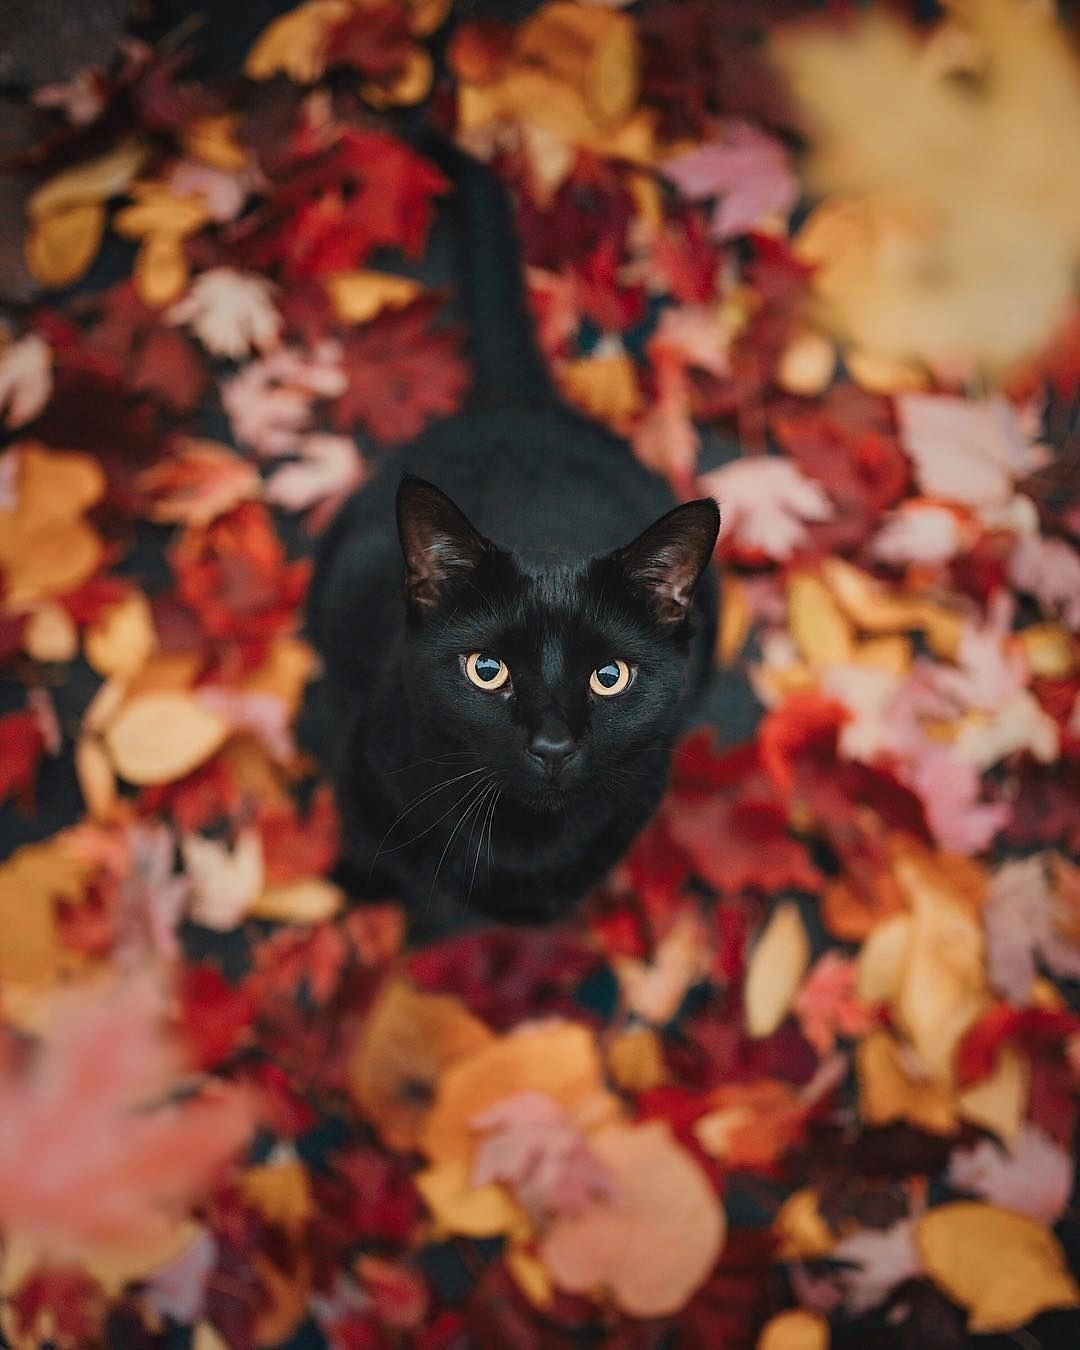 This Is My Time Of Year Says Kitty I Want Humans To Stop Treating Black Cats Cruelly During Our Favorite Time Of Year So We Cute Animals Animals Cat Love